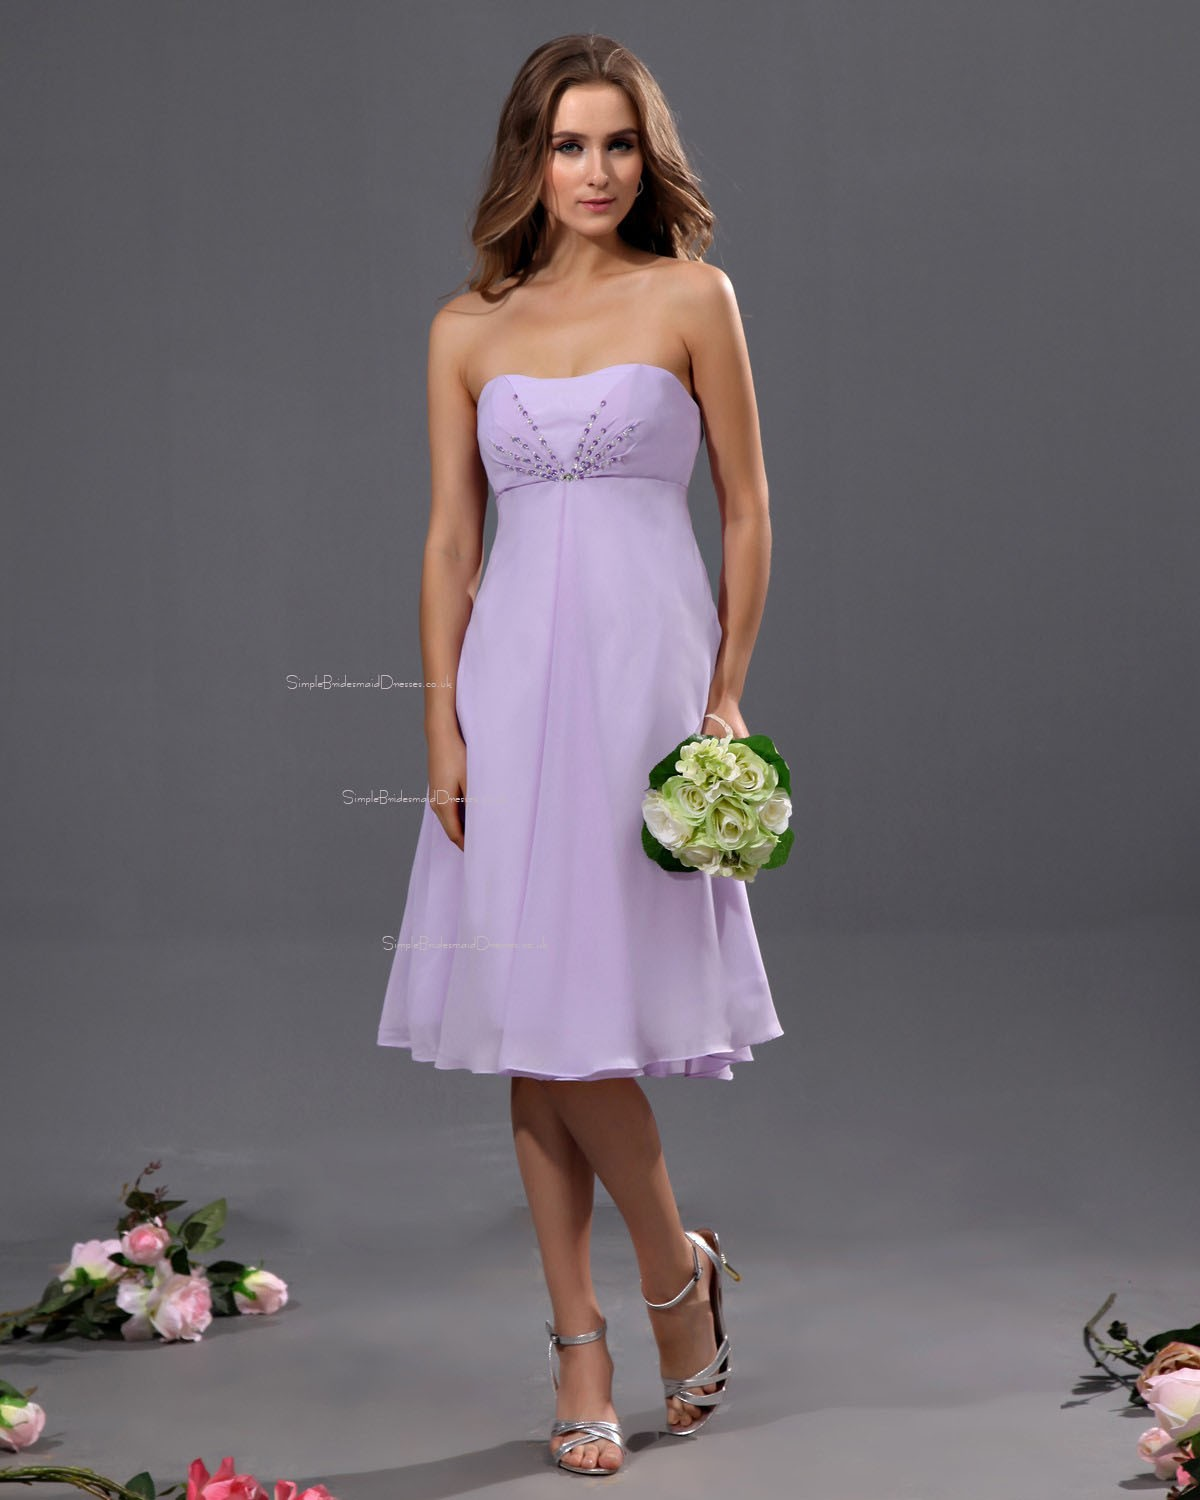 Sweetheart Knee-length Lilac Ruffles Beading Natural Chiffon Sleeveless  A-line Zipper Bridesmaid ... 2a35bf6b9361